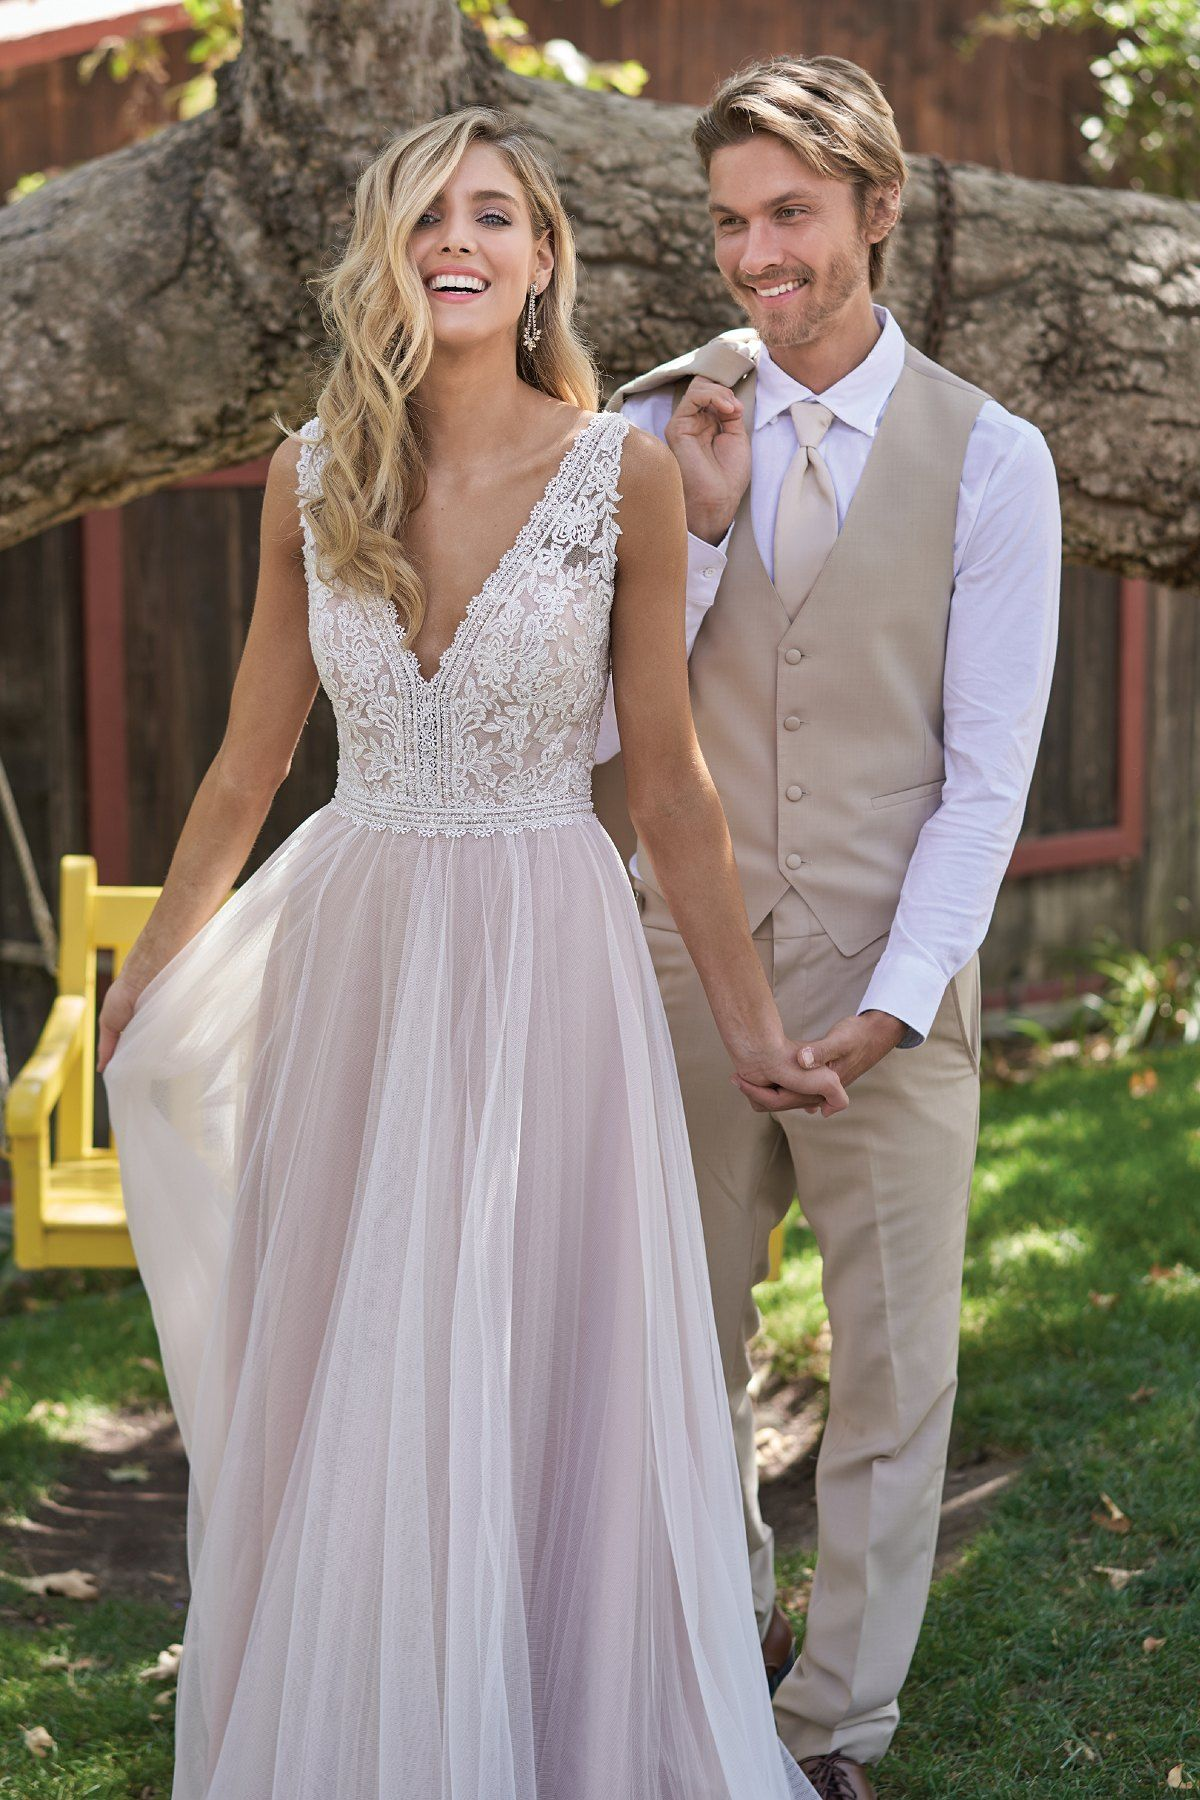 2020 Best Wedding Dress New Dress Semi Formal Outfits For Ladies Long Sleeve Lace Bridal Gowns